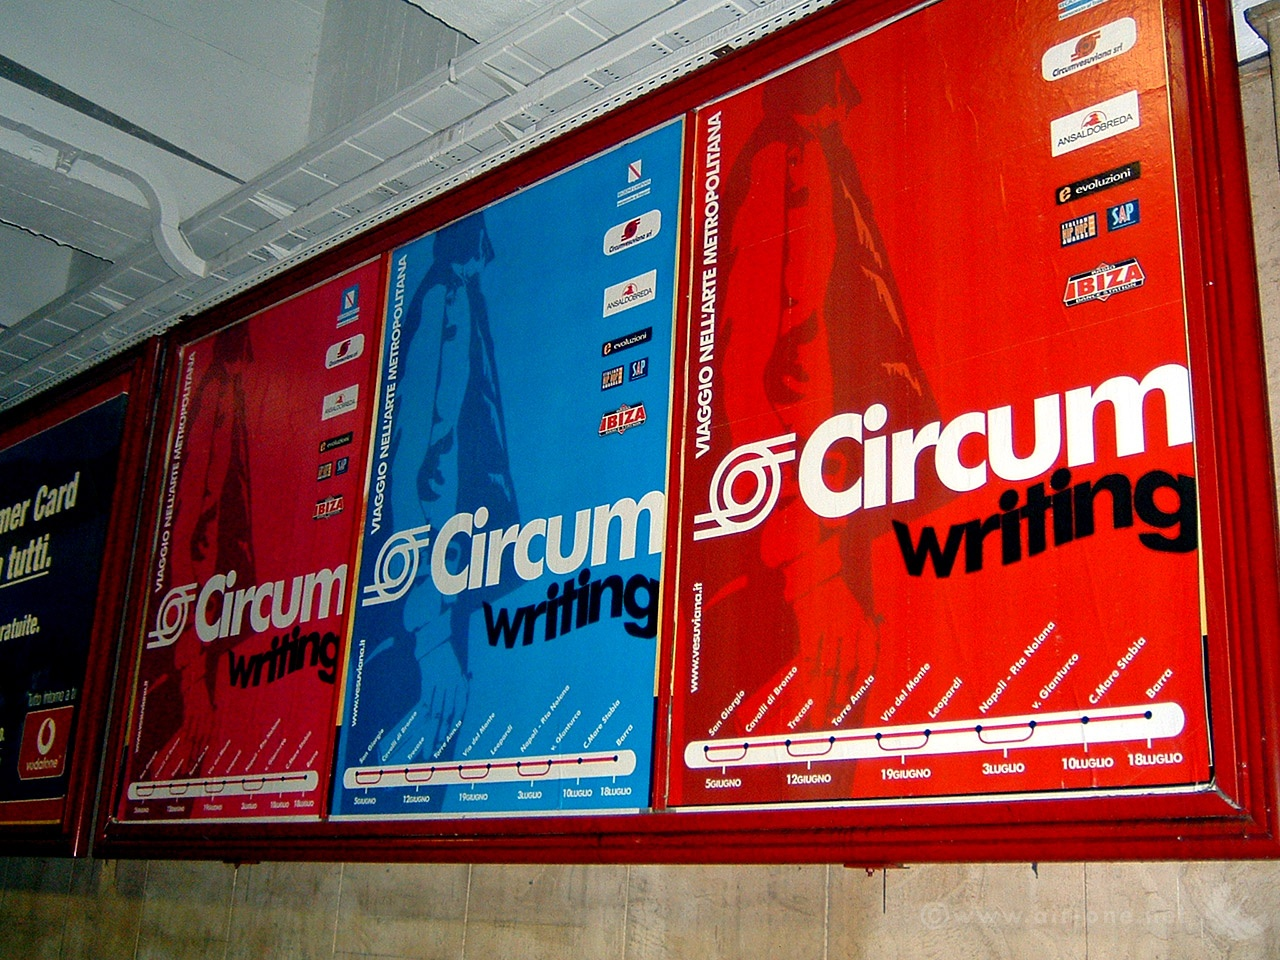 Circum Writing - Napoli 2004